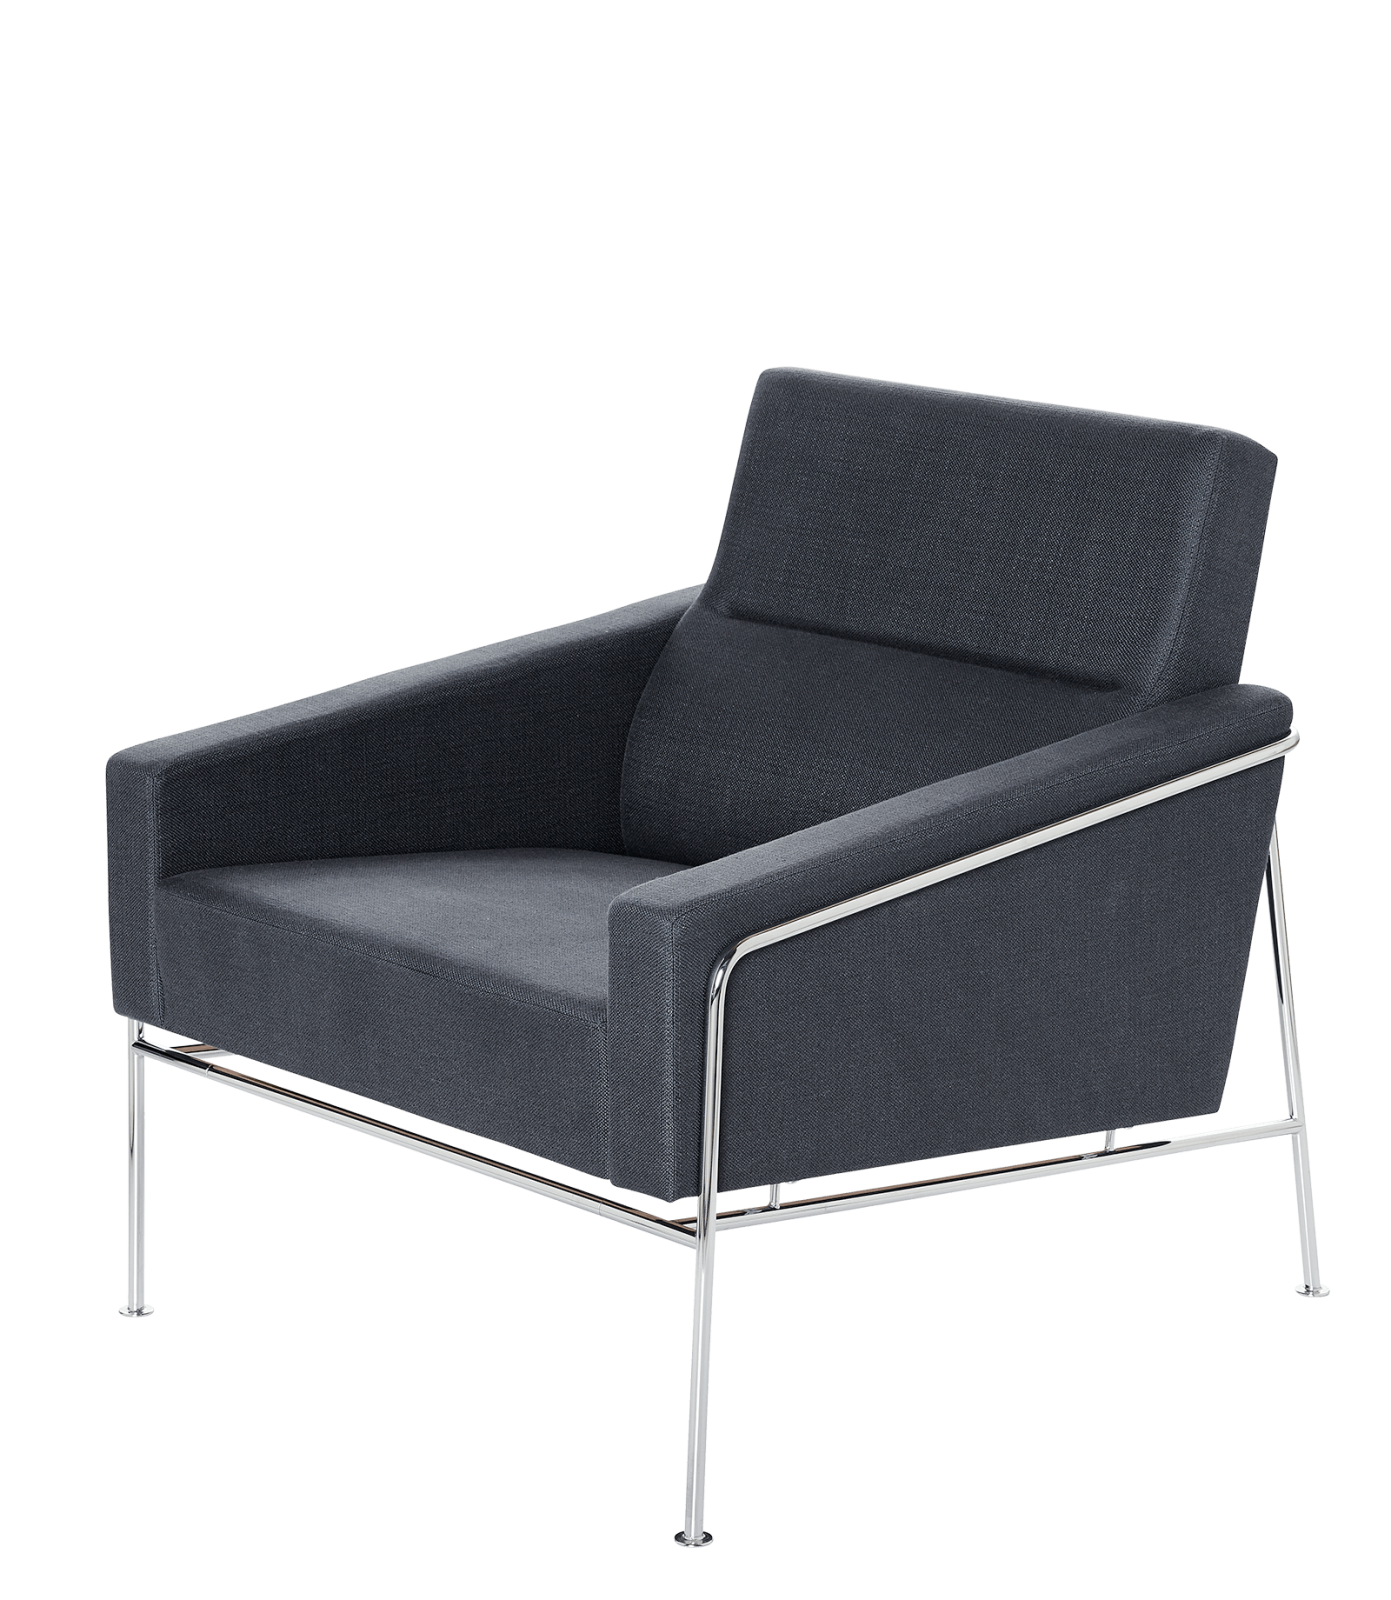 Series 3300 Armchair Fame 60003